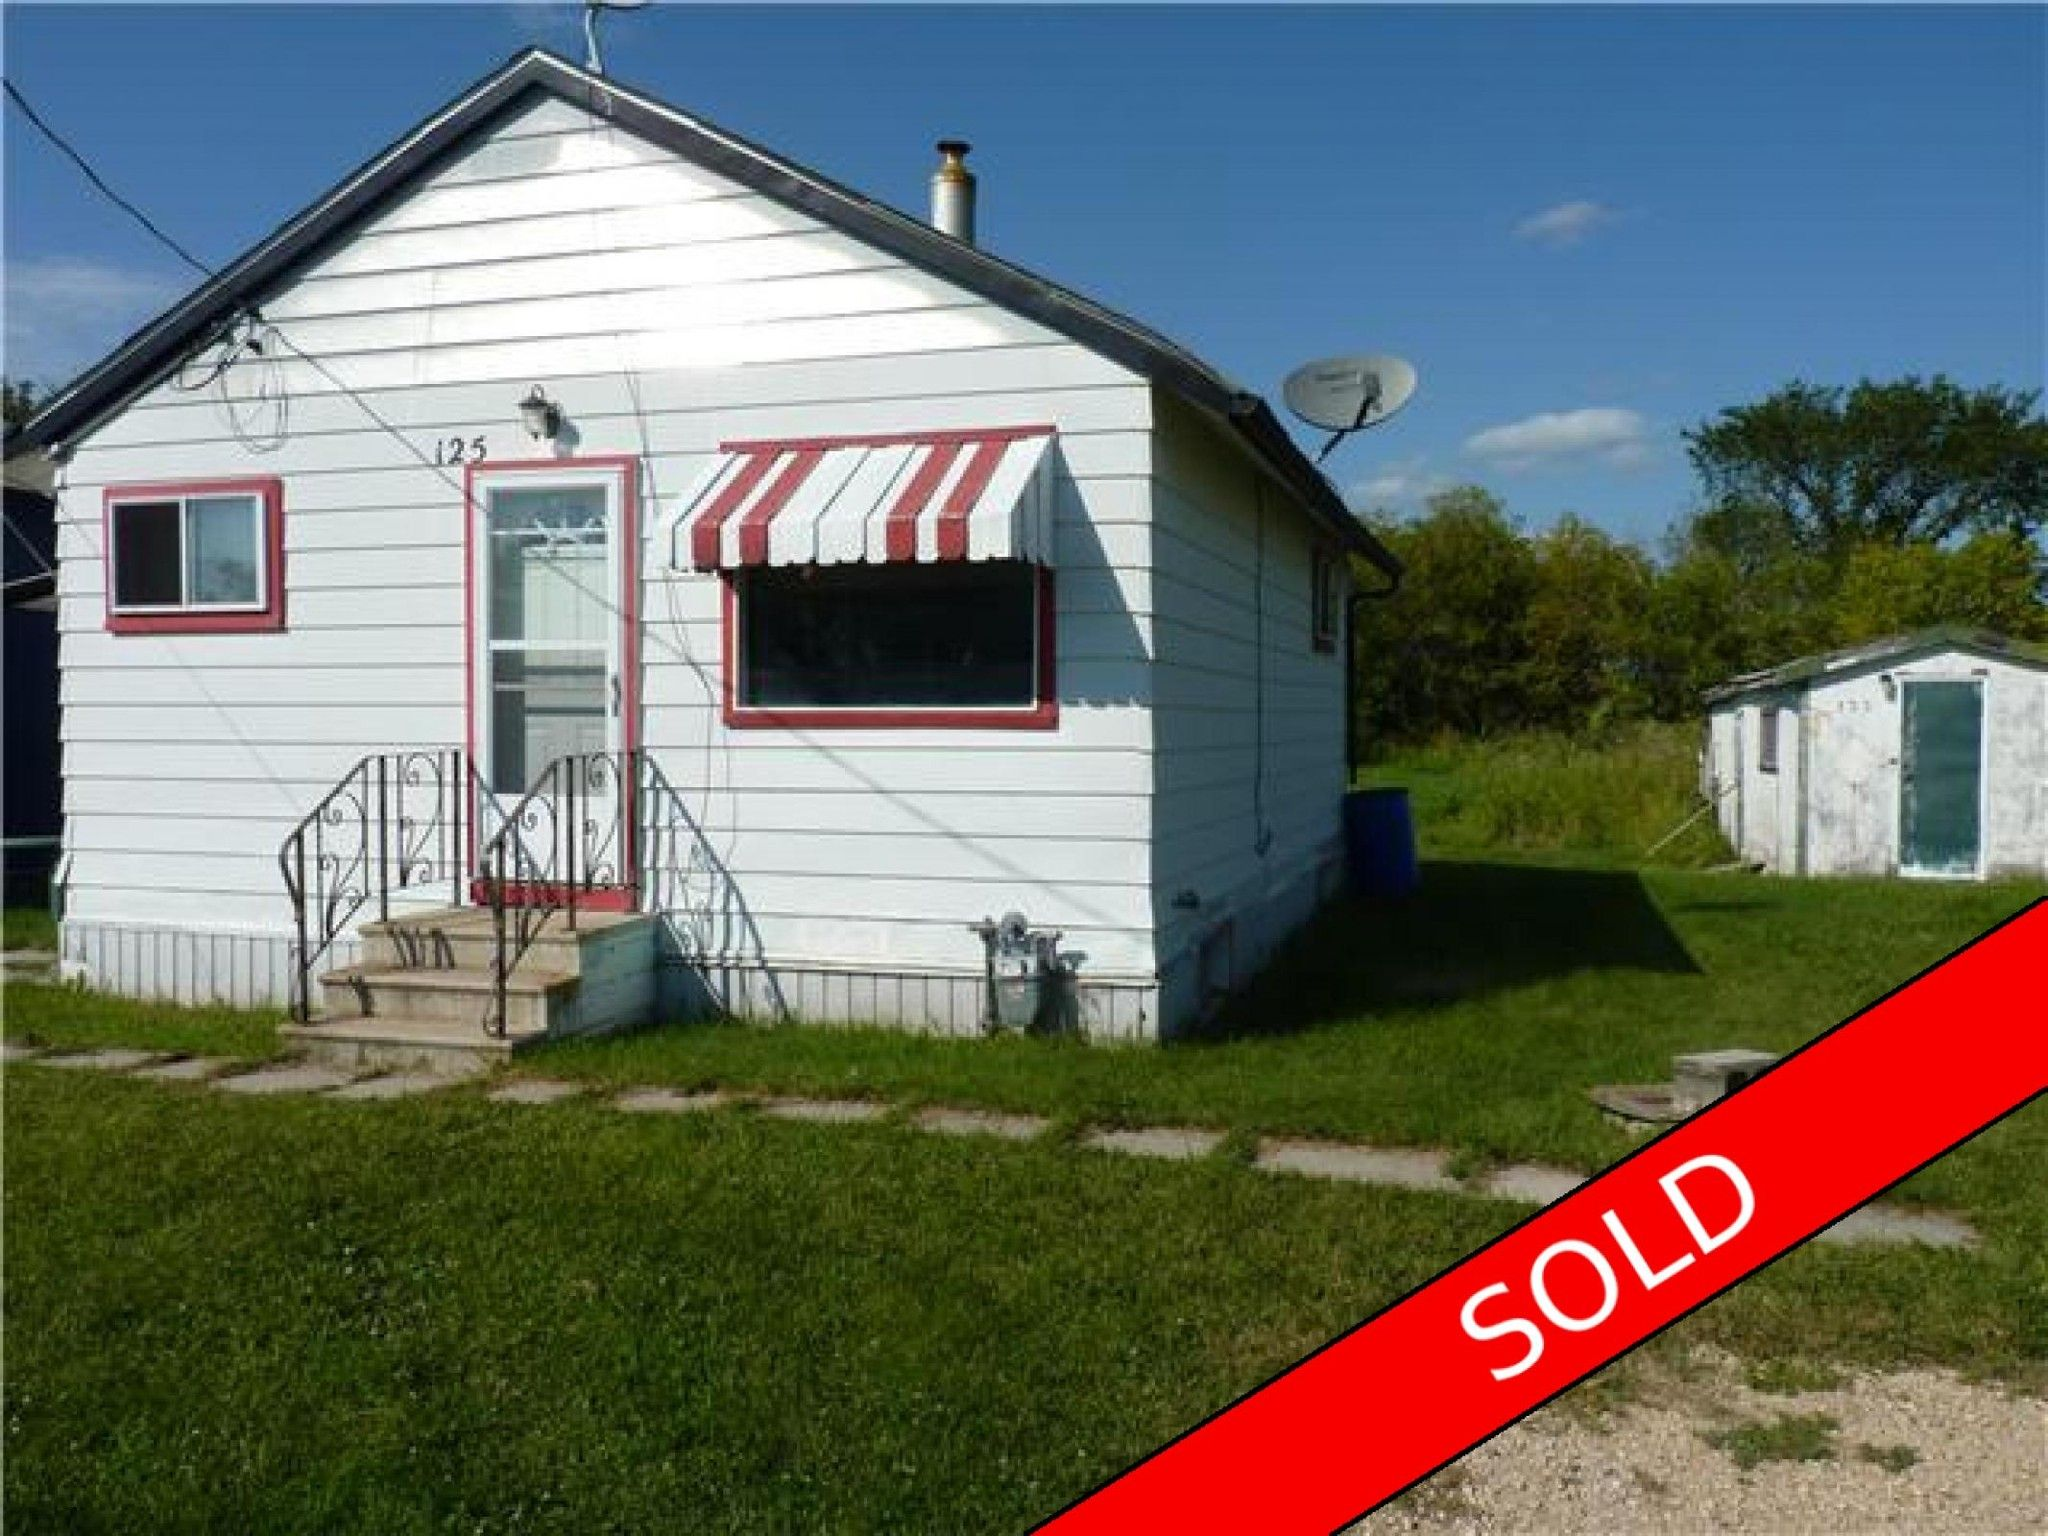 Main Photo: 125 Lily Avenue in Selkirk, MB R1A2A7: House for sale : MLS®# 1620204